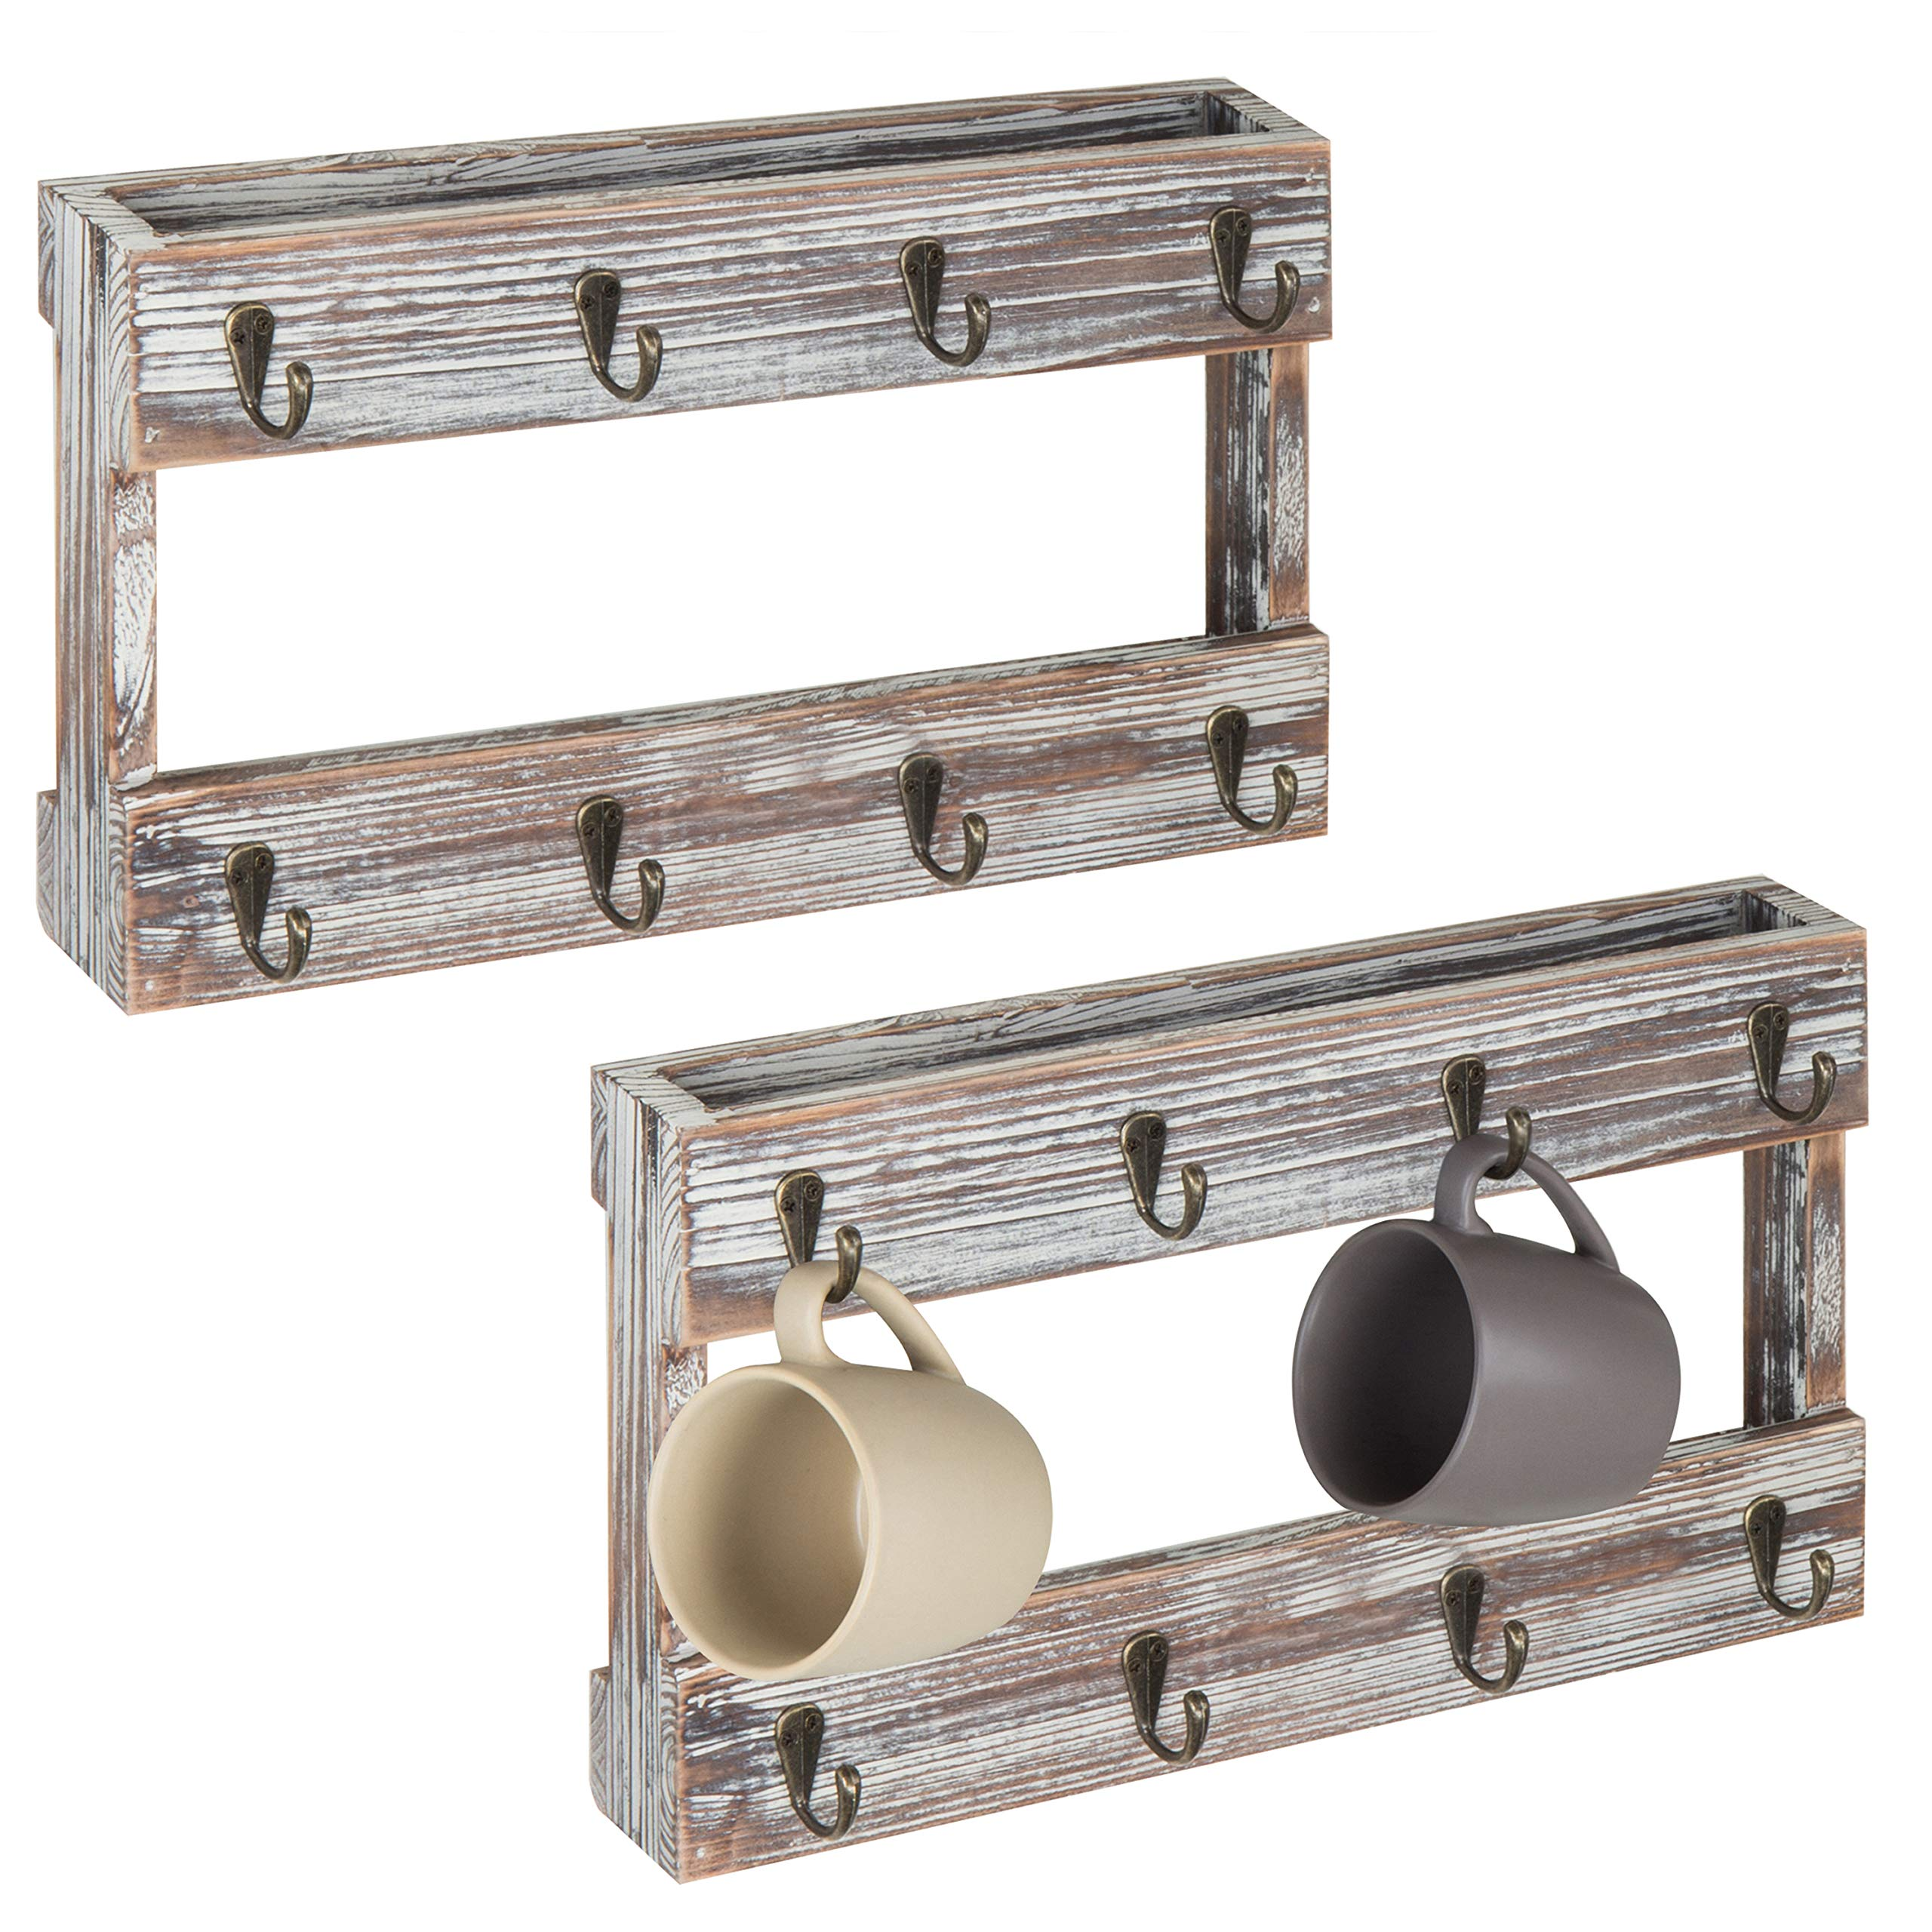 MyGift Wall-Mounted Torched Wood 8-Hook Coffee Mug Hanging Rack, Set of 2 by MyGift